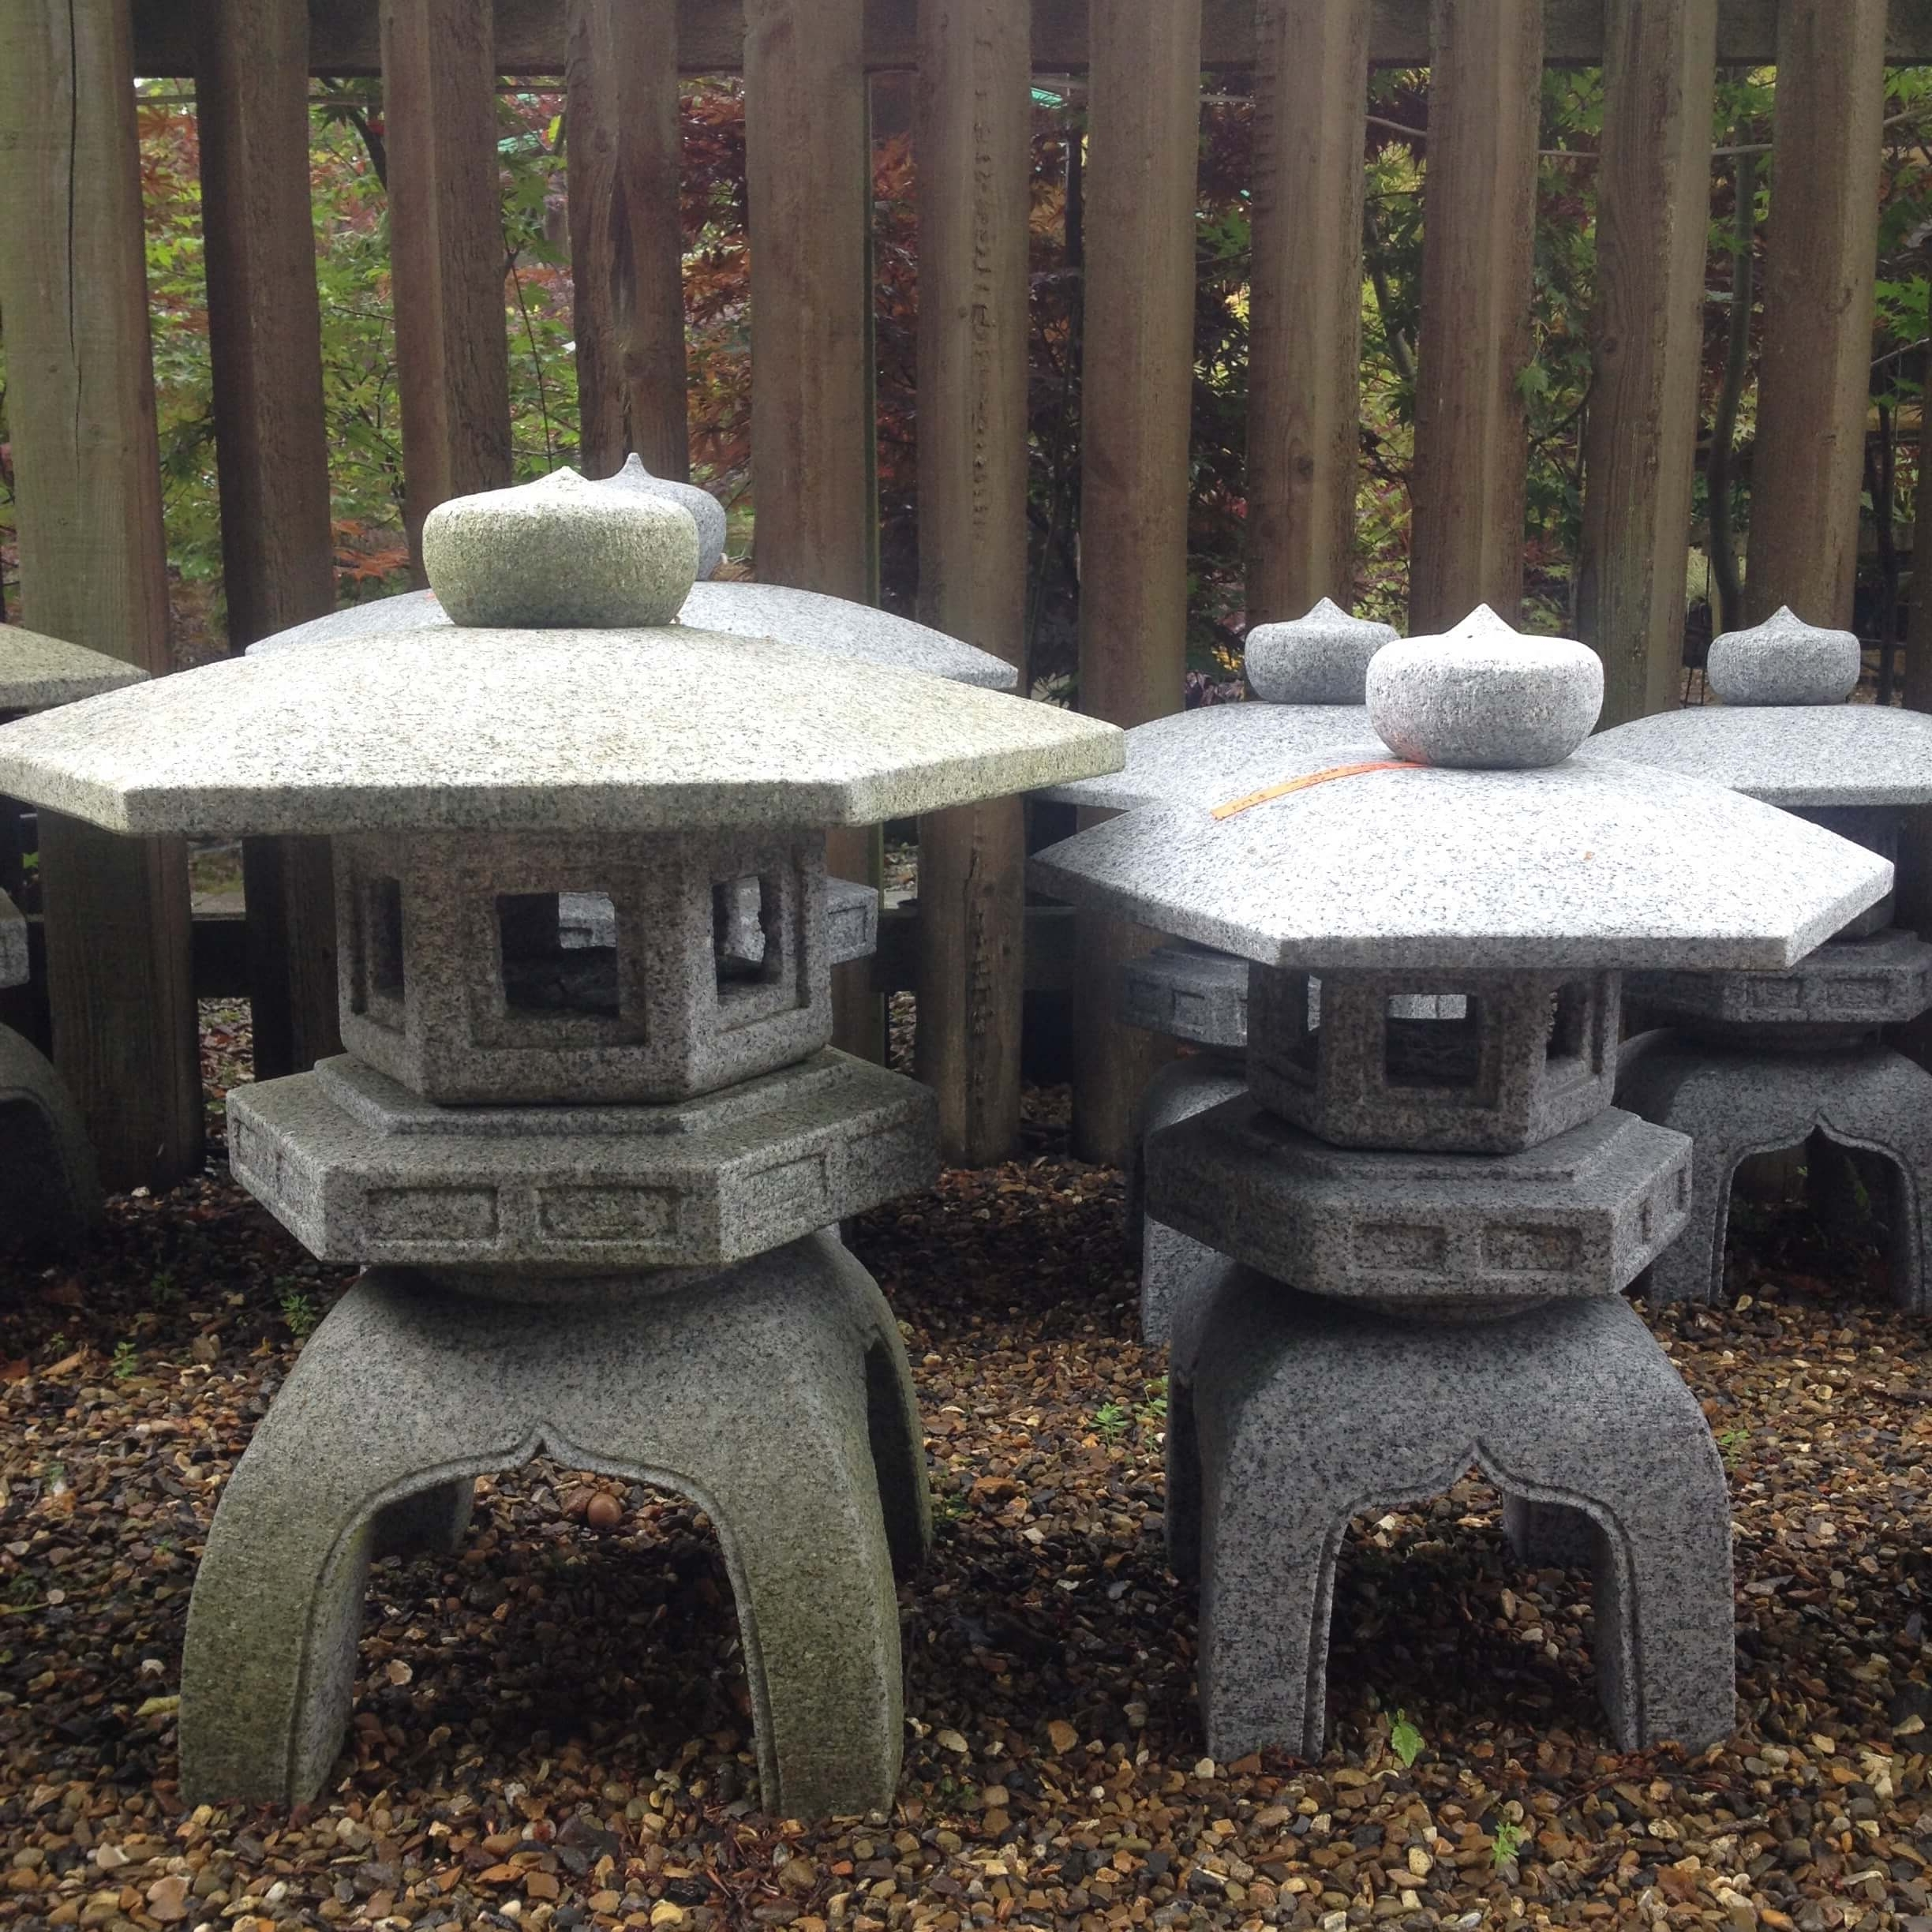 Most Recently Released Kodai Rokkaku Yukimi Japanese Stone Lantern For Oriental Gardens Intended For Outdoor Oriental Lanterns (View 8 of 20)